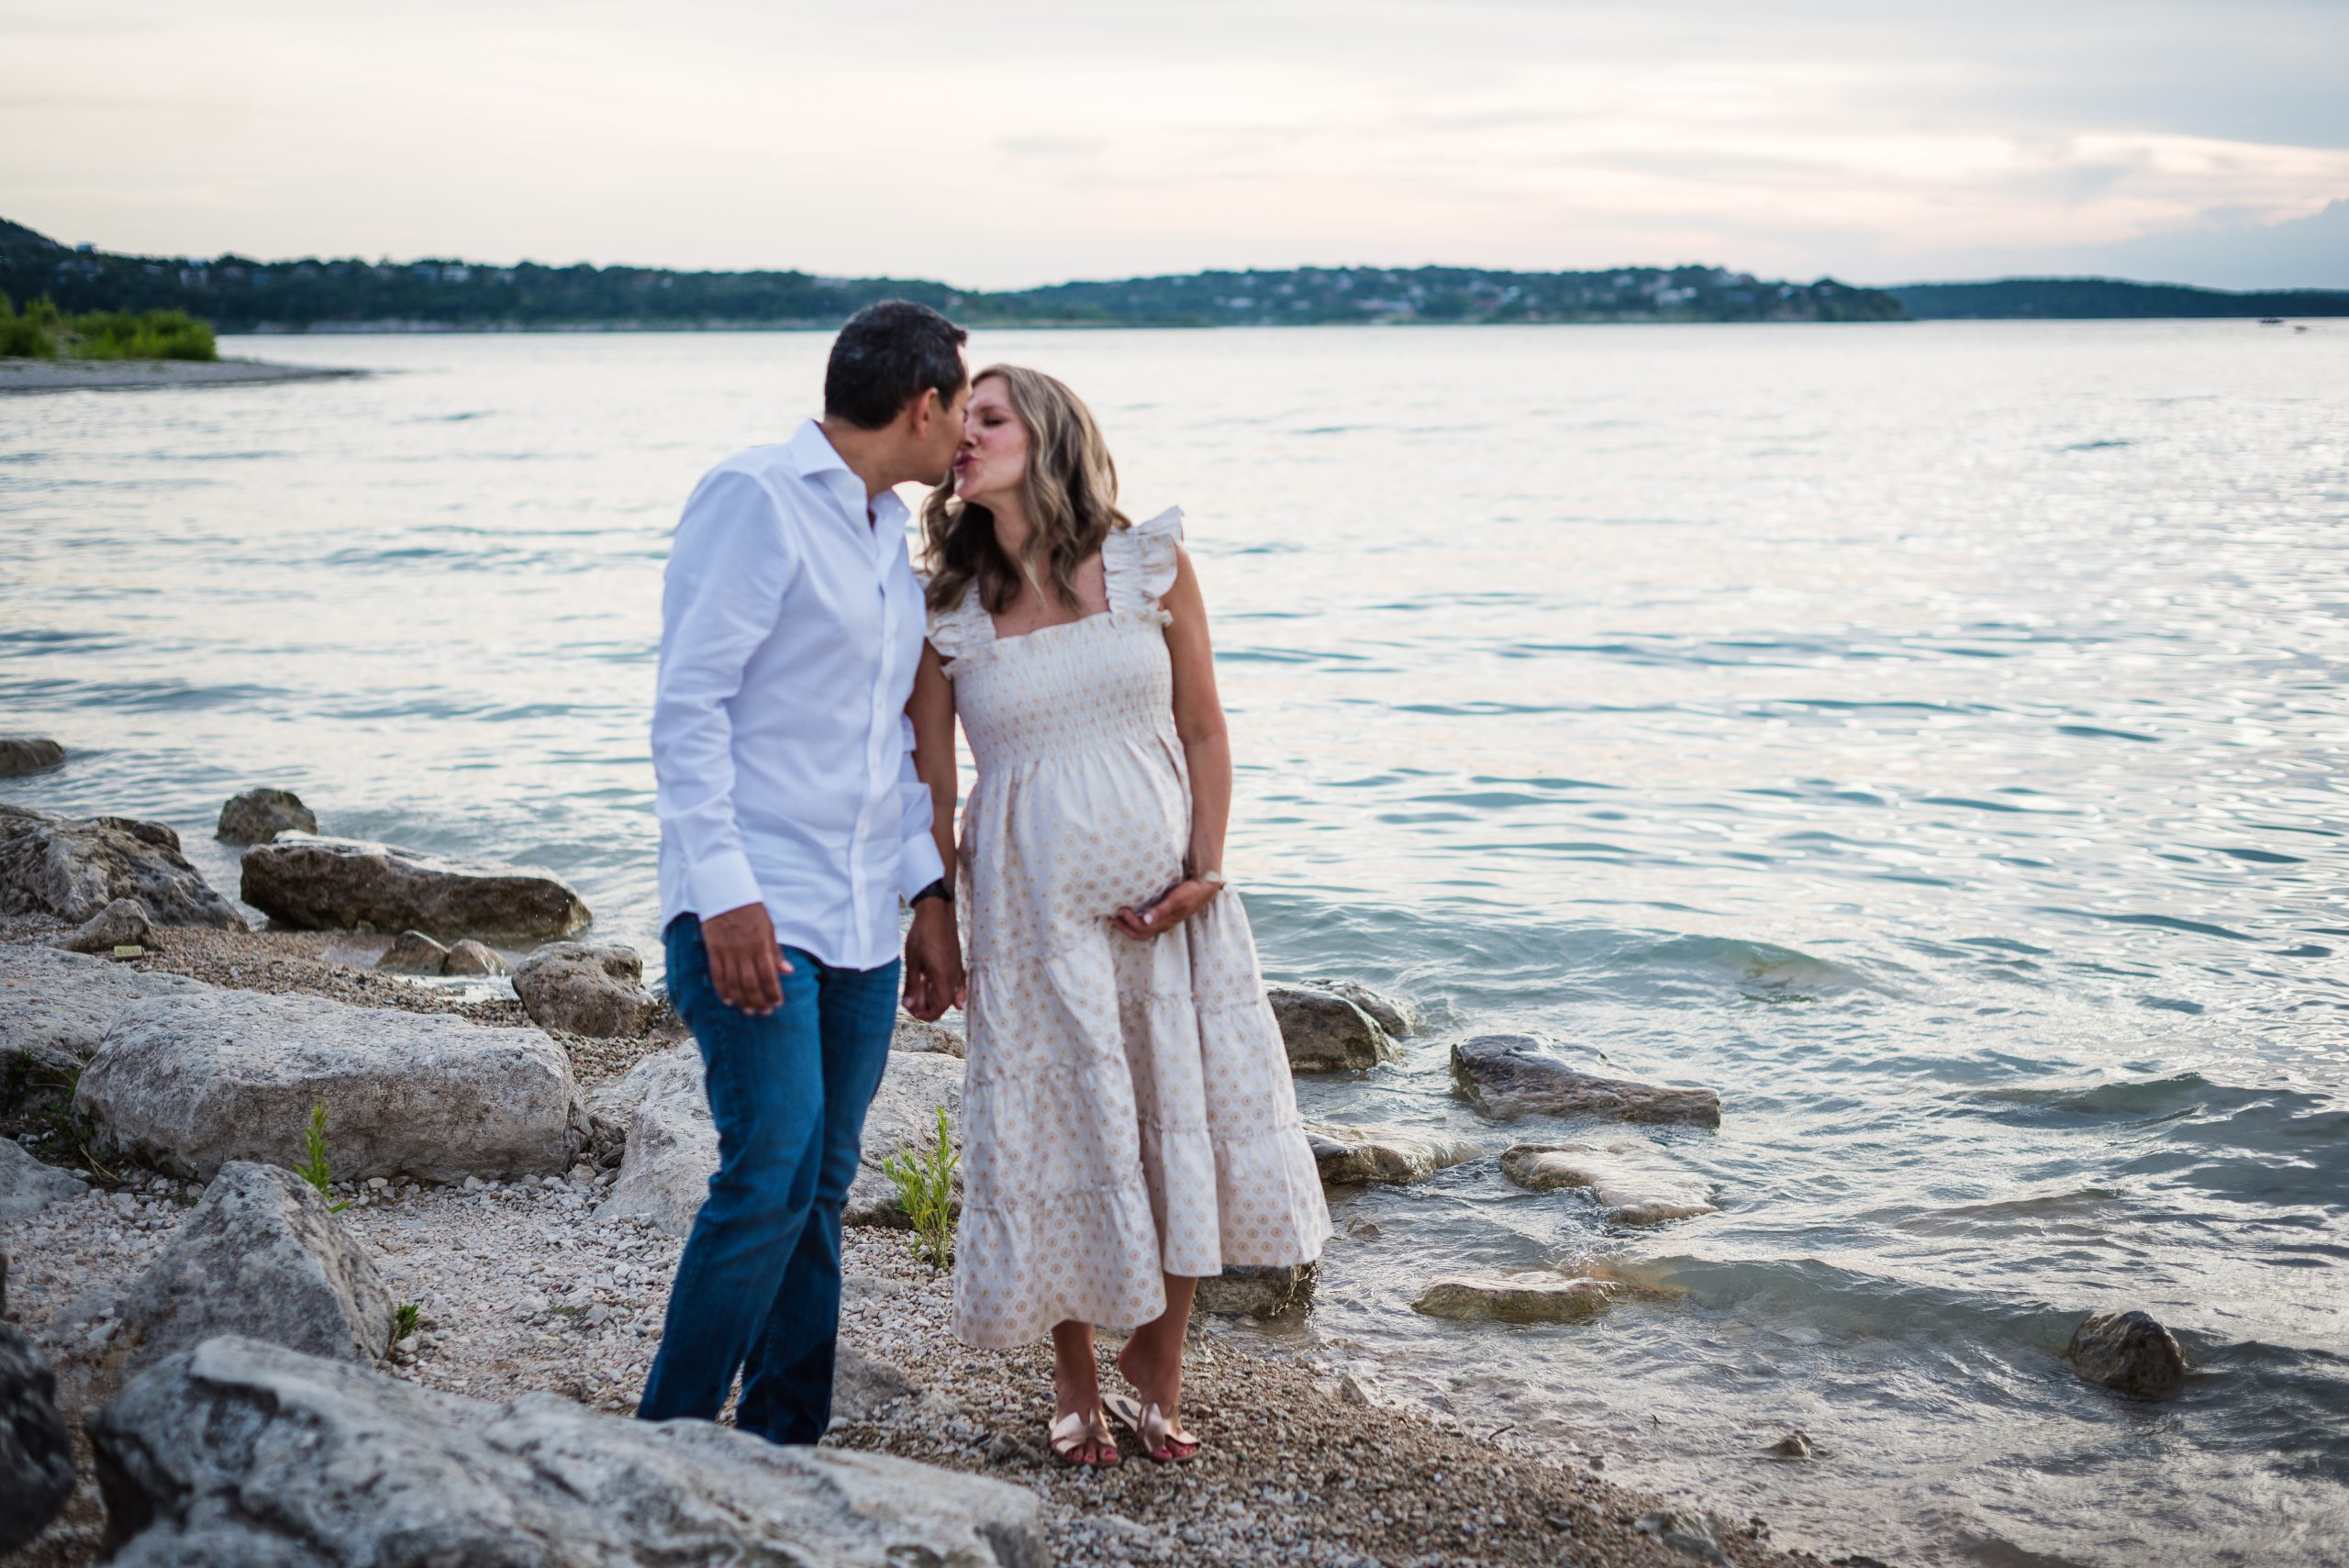 Maternity Photography Session At Canyon Lake, Texas In July Gruene Photography 35